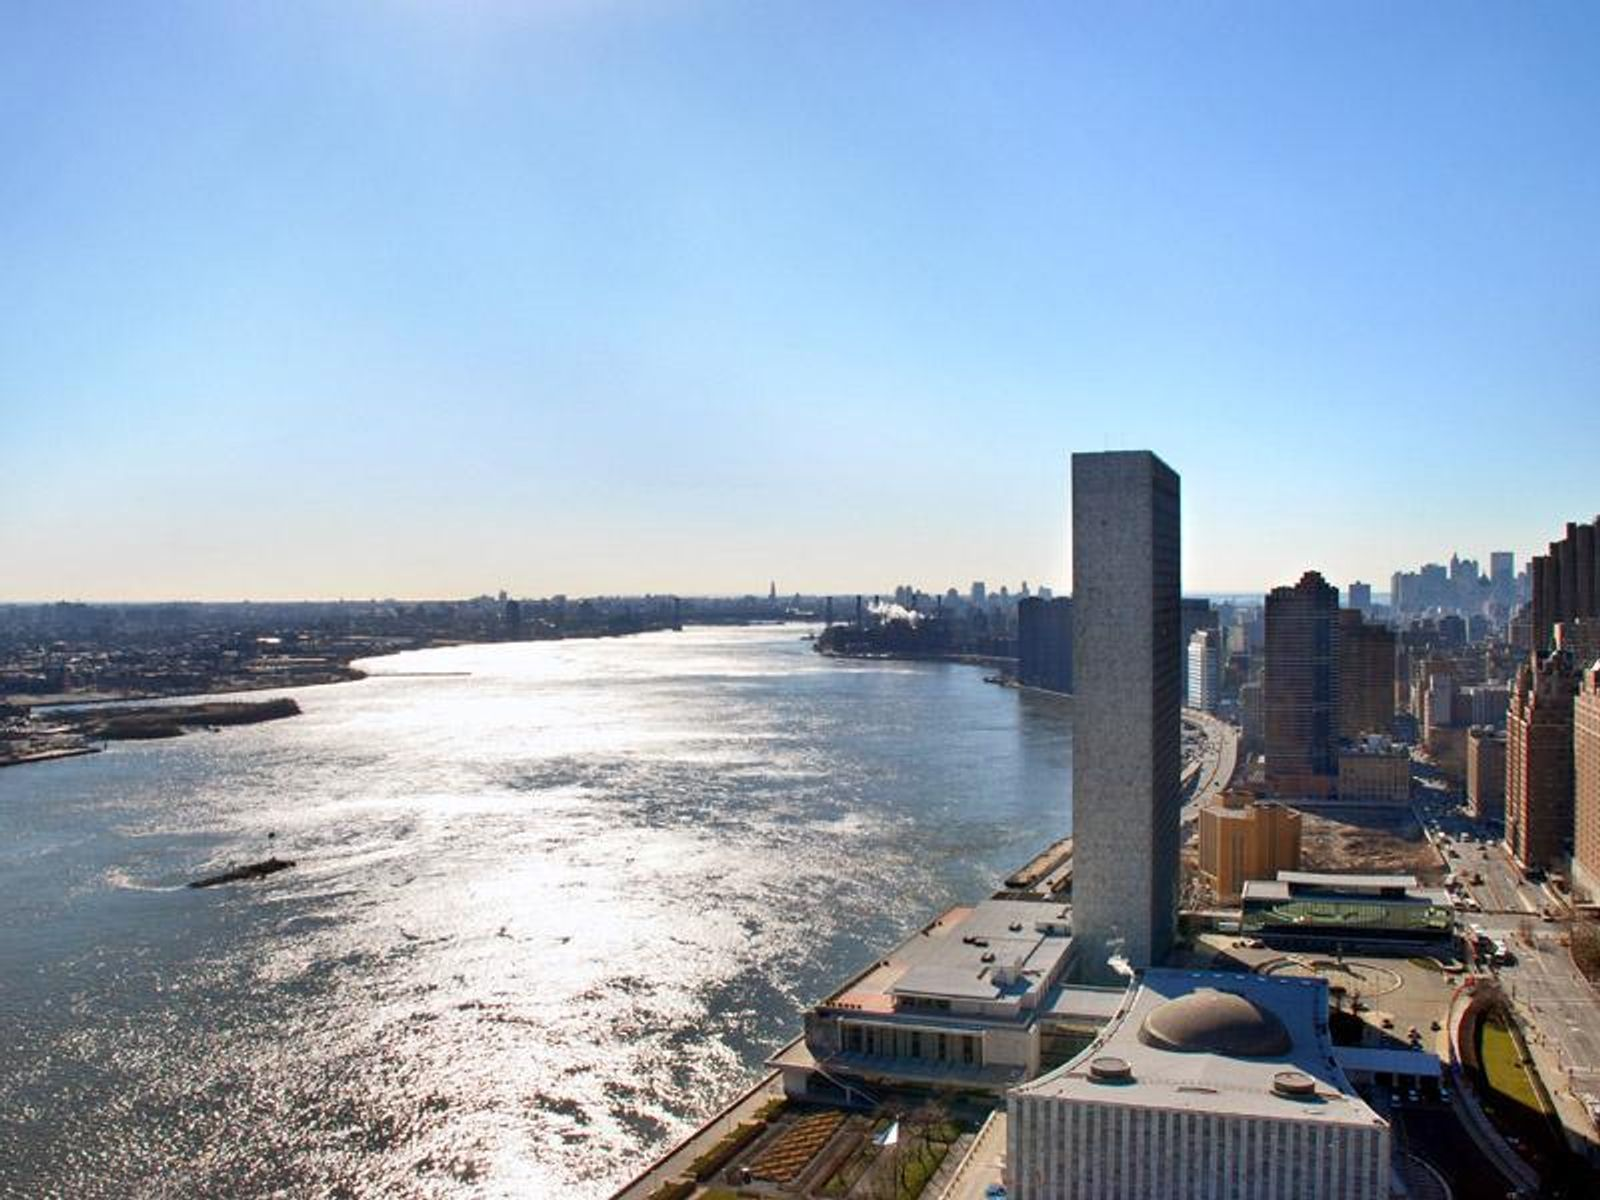 East River and 49th Street